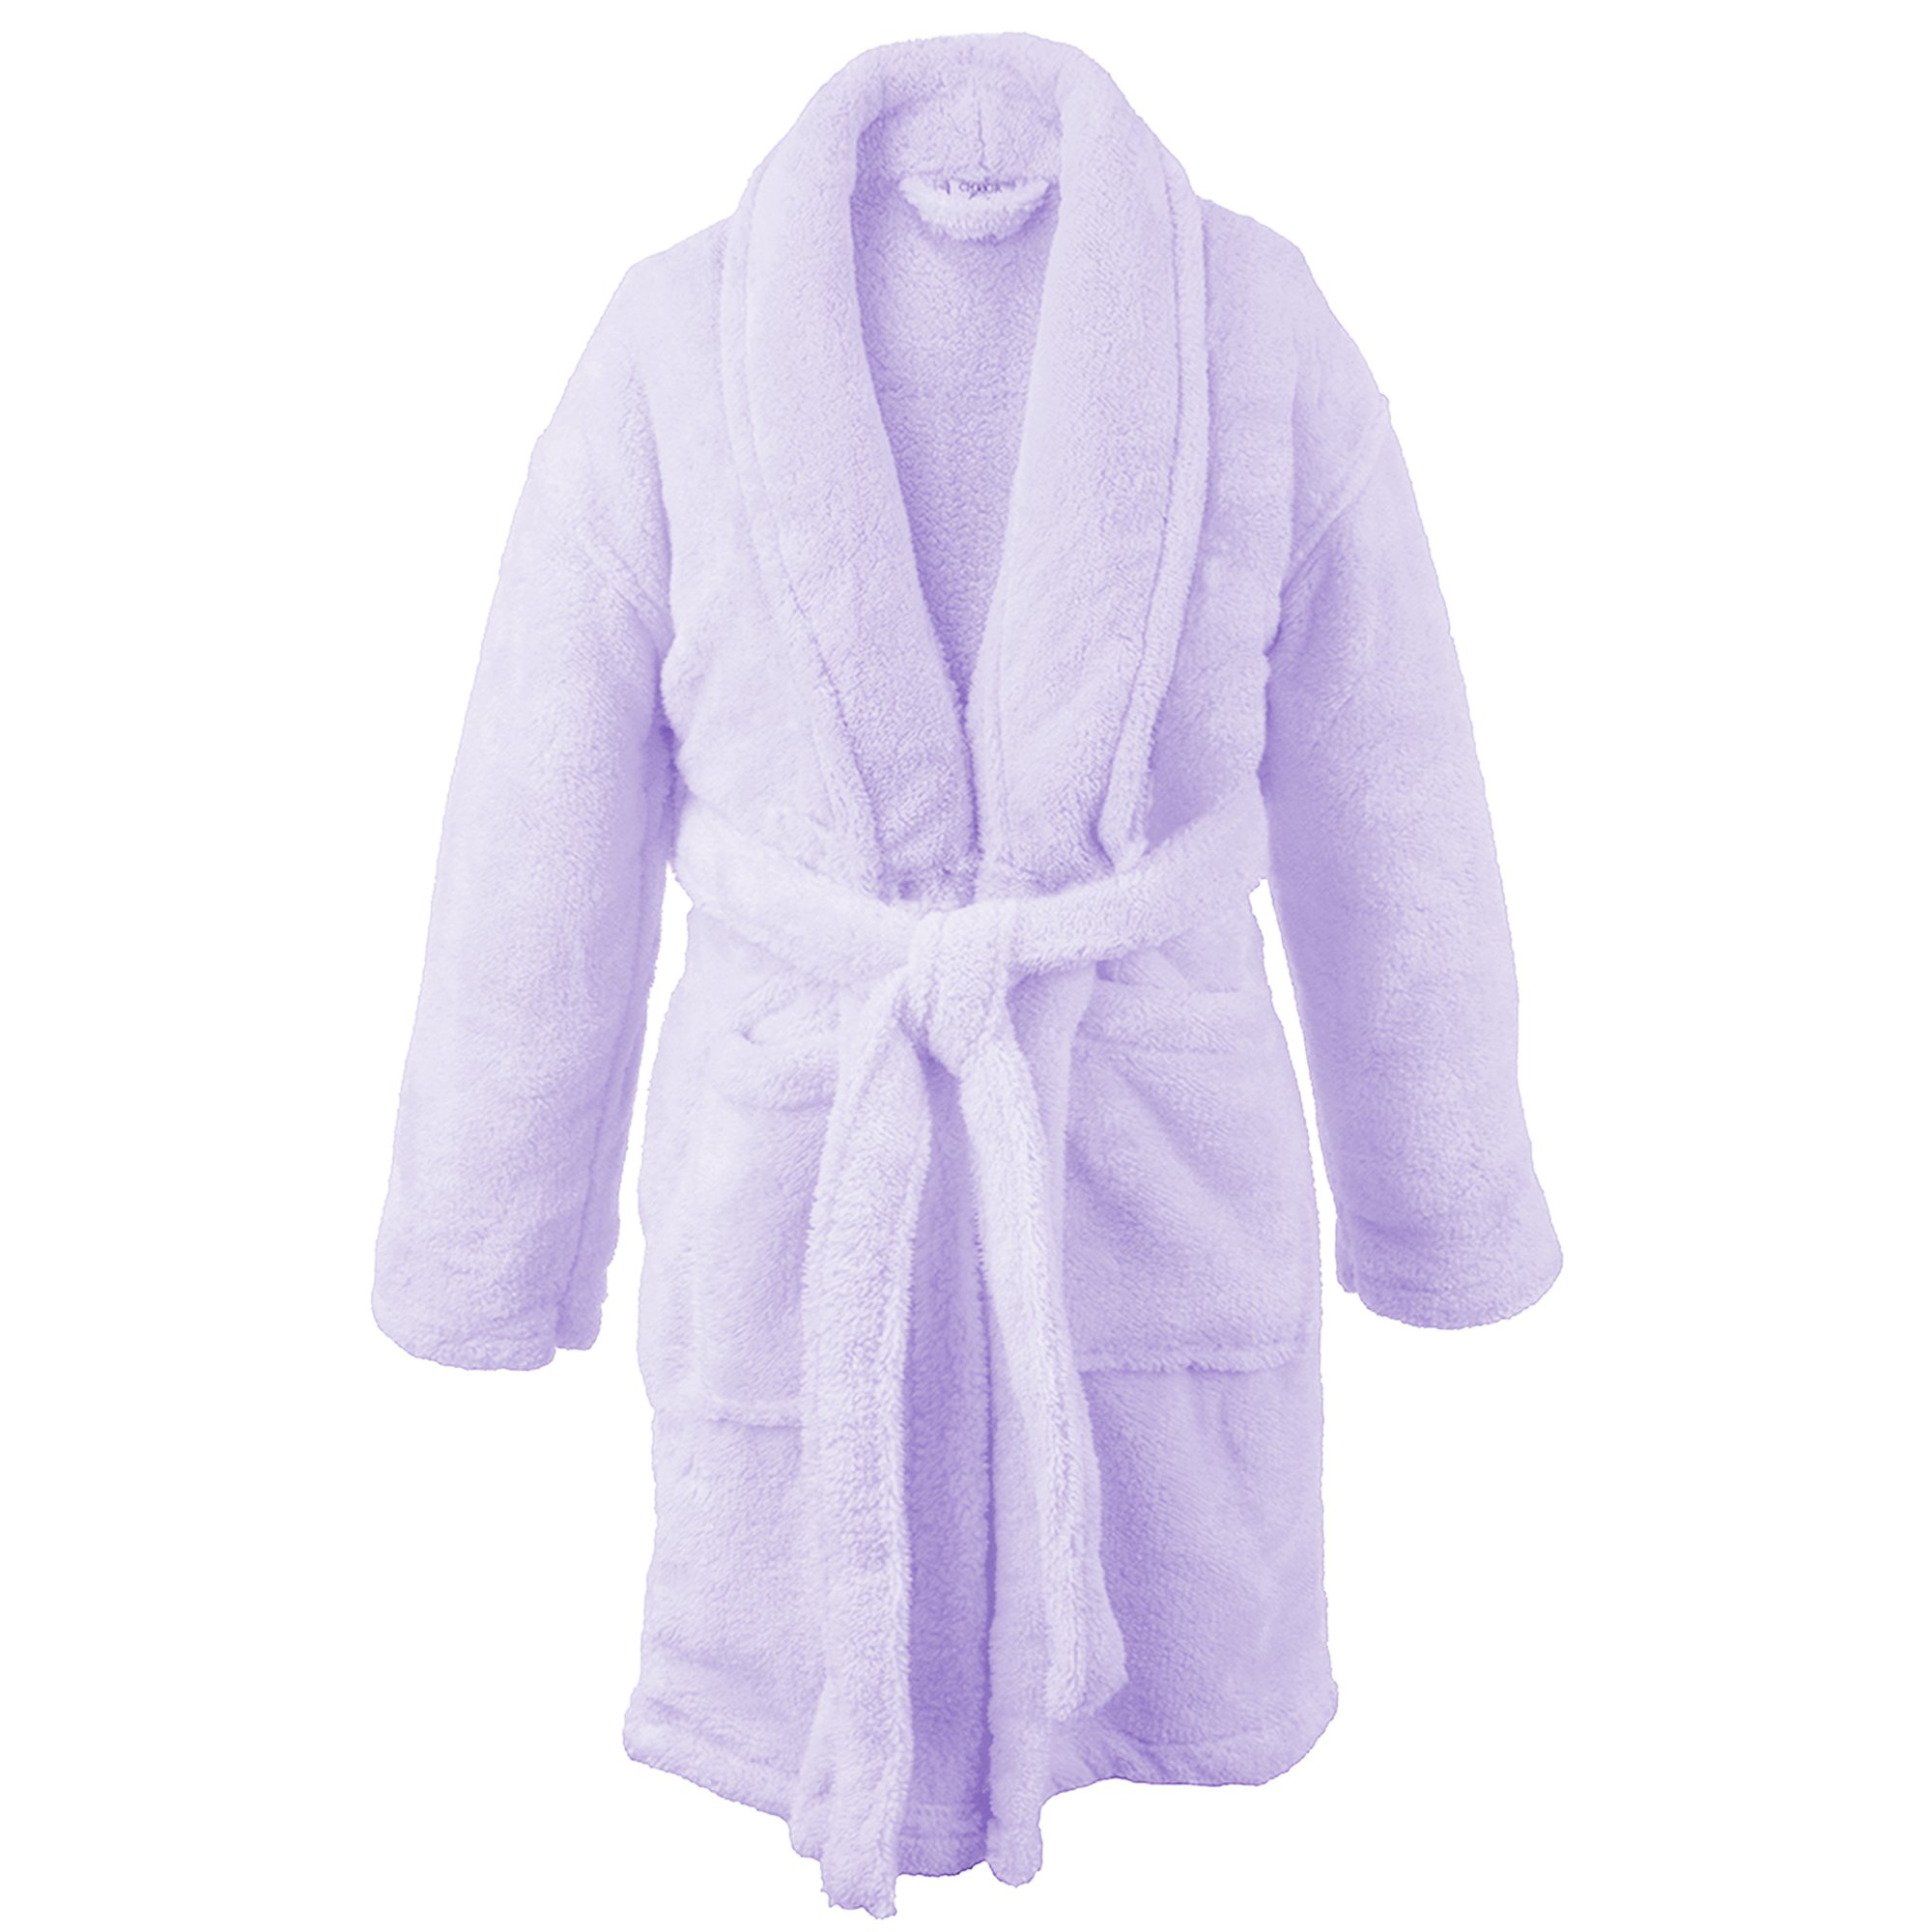 Image of A Fleece Favorite: Plush Lavender Robe for Girls - See More Colors